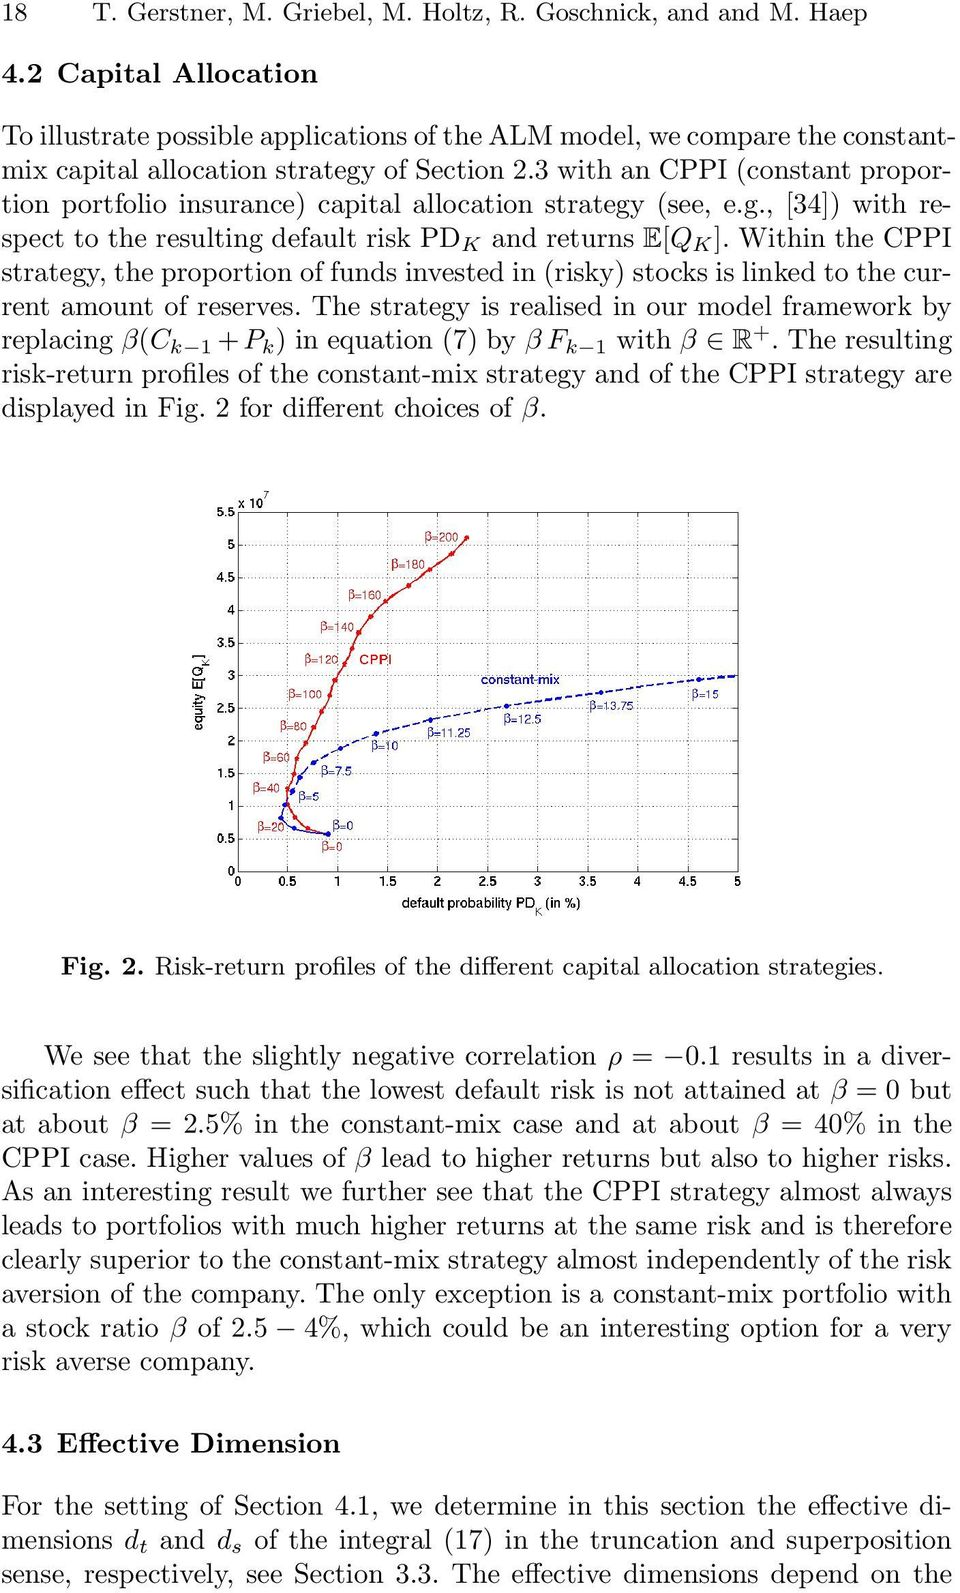 3 with an CPPI (constant proportion portfolio insurance) capital allocation strategy (see, e.g., [34]) with respect to the resulting default ris PD K and returns E[Q K ].